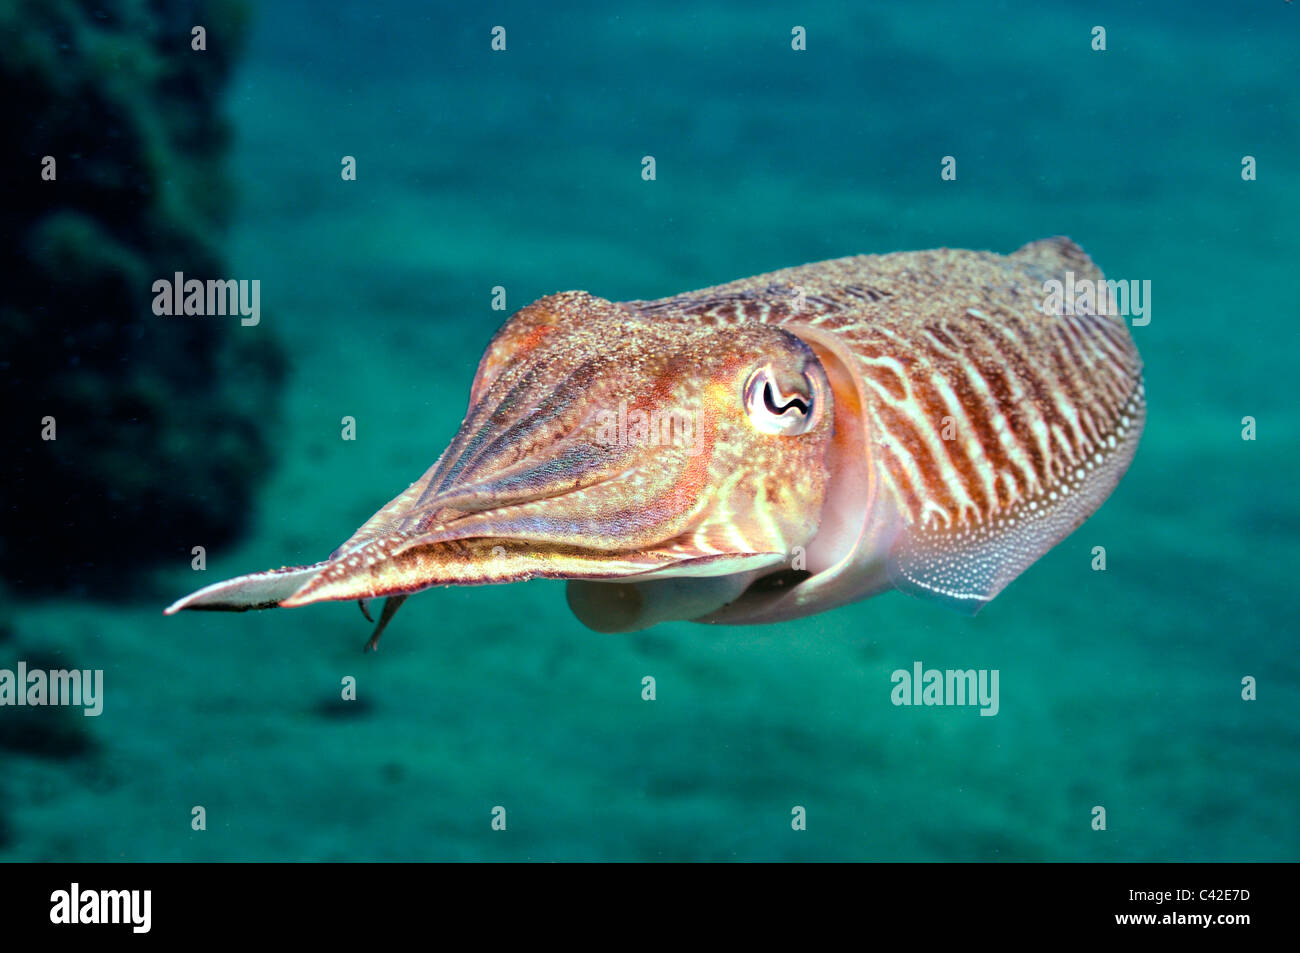 Cuttlefish (Sepia officinalis) swimming underwater - Stock Image